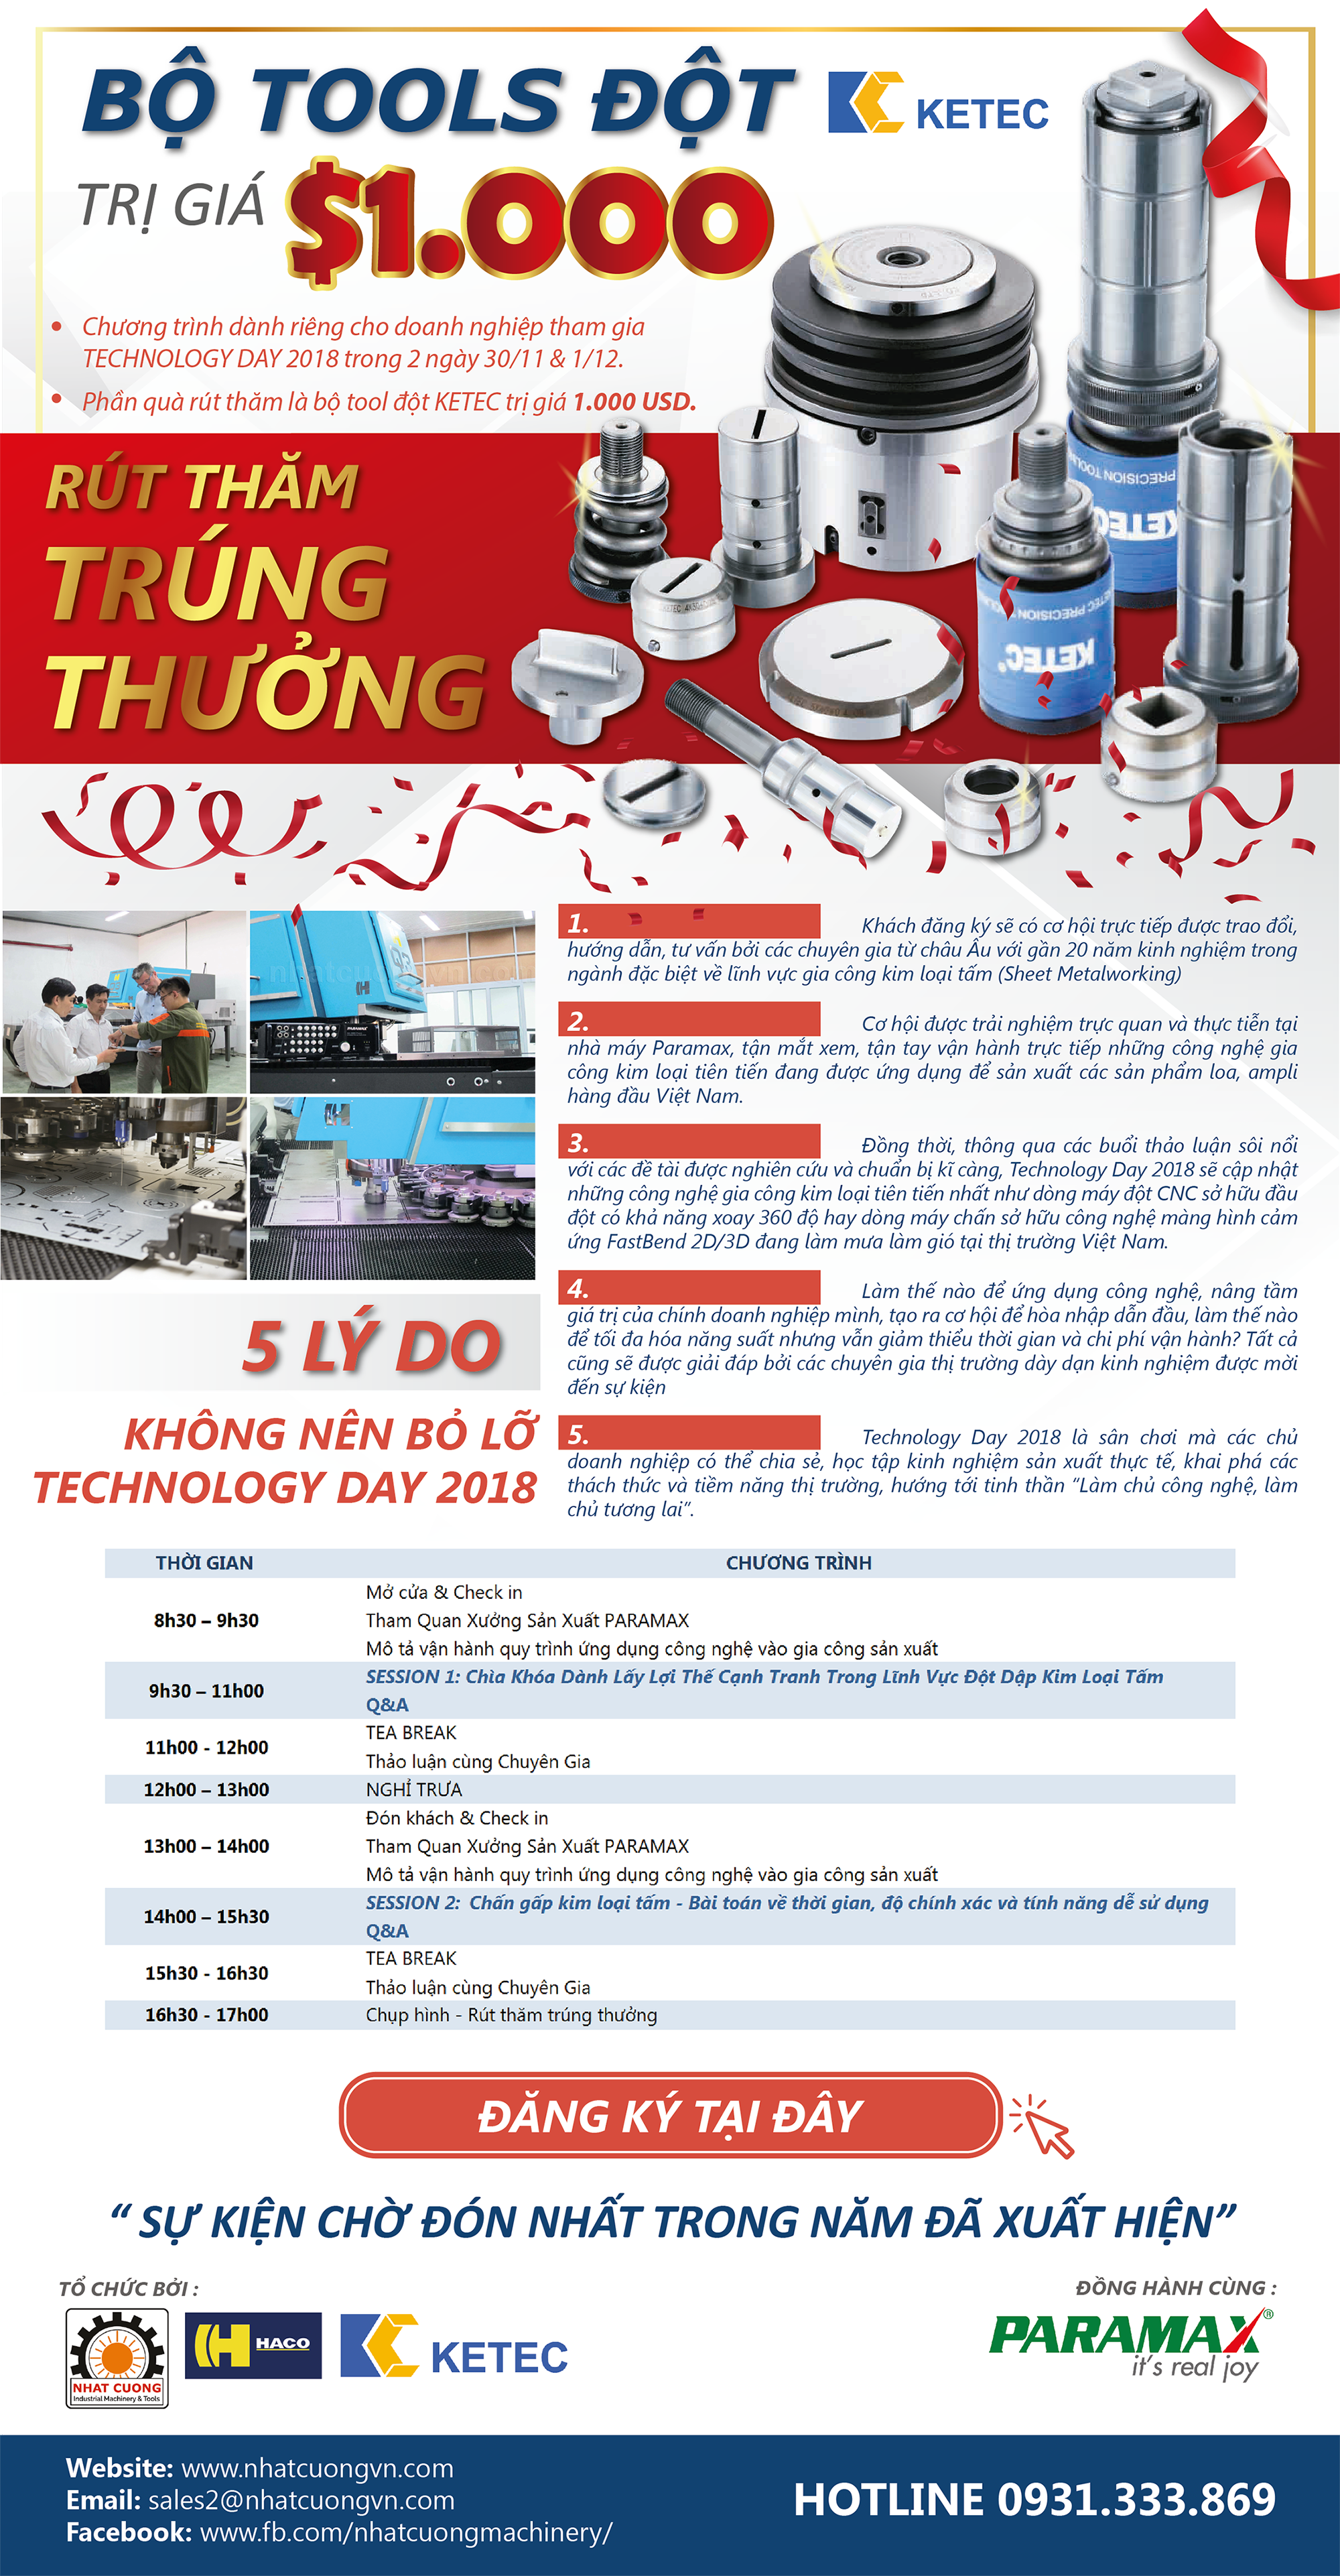 technology_day_2018_nhat_cuong_2